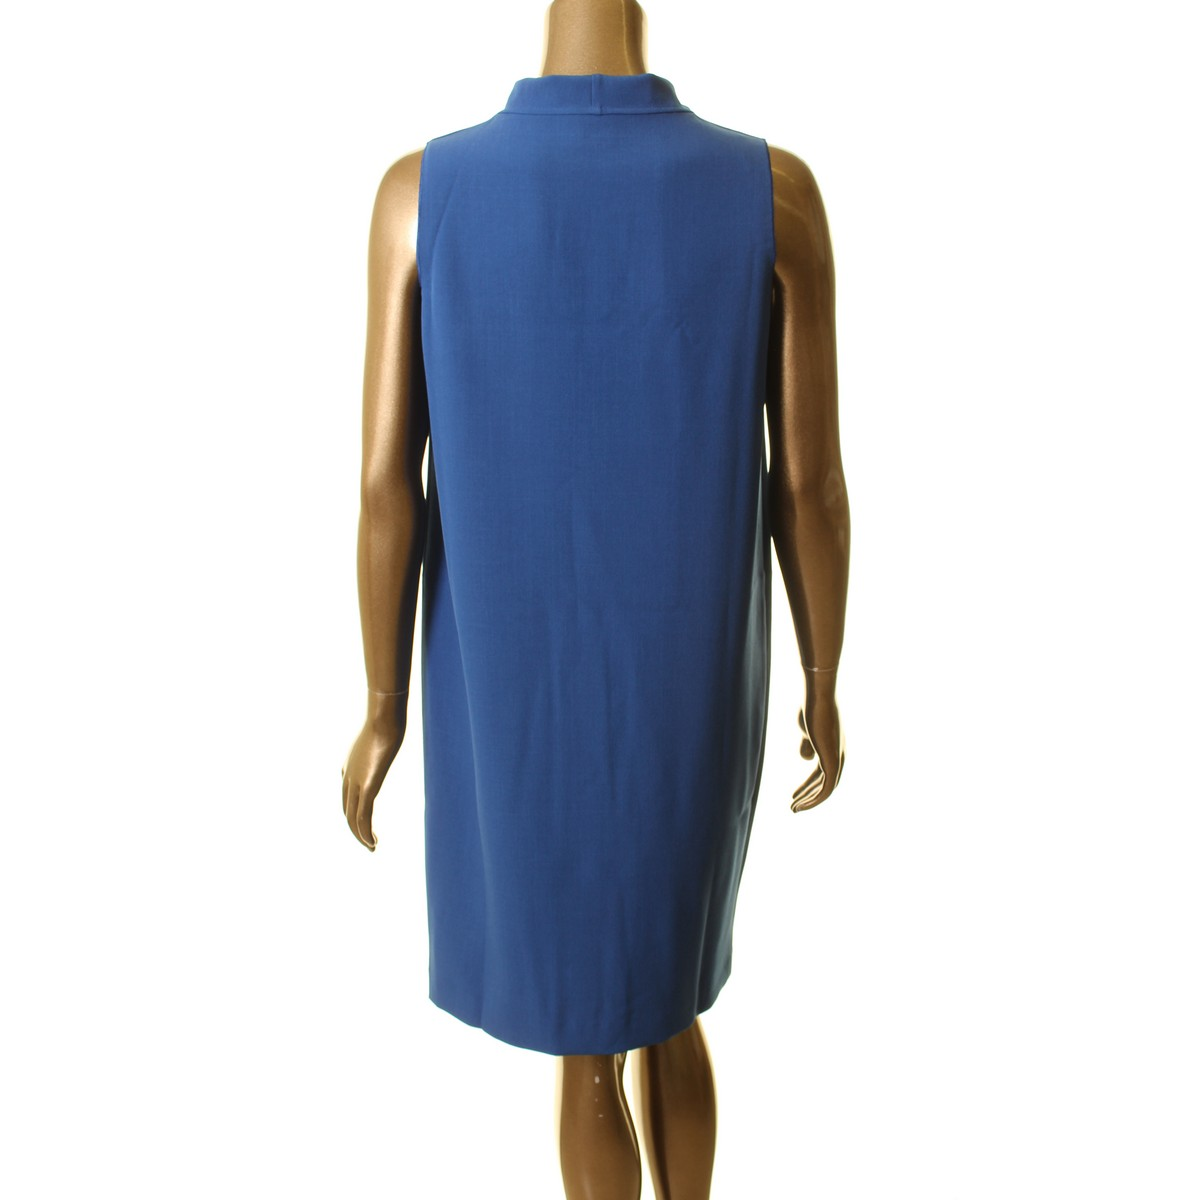 ANNE-KLEIN-NEW-Women-039-s-Sleeveless-Cowl-Neck-Shift-Dress-TEDO thumbnail 6